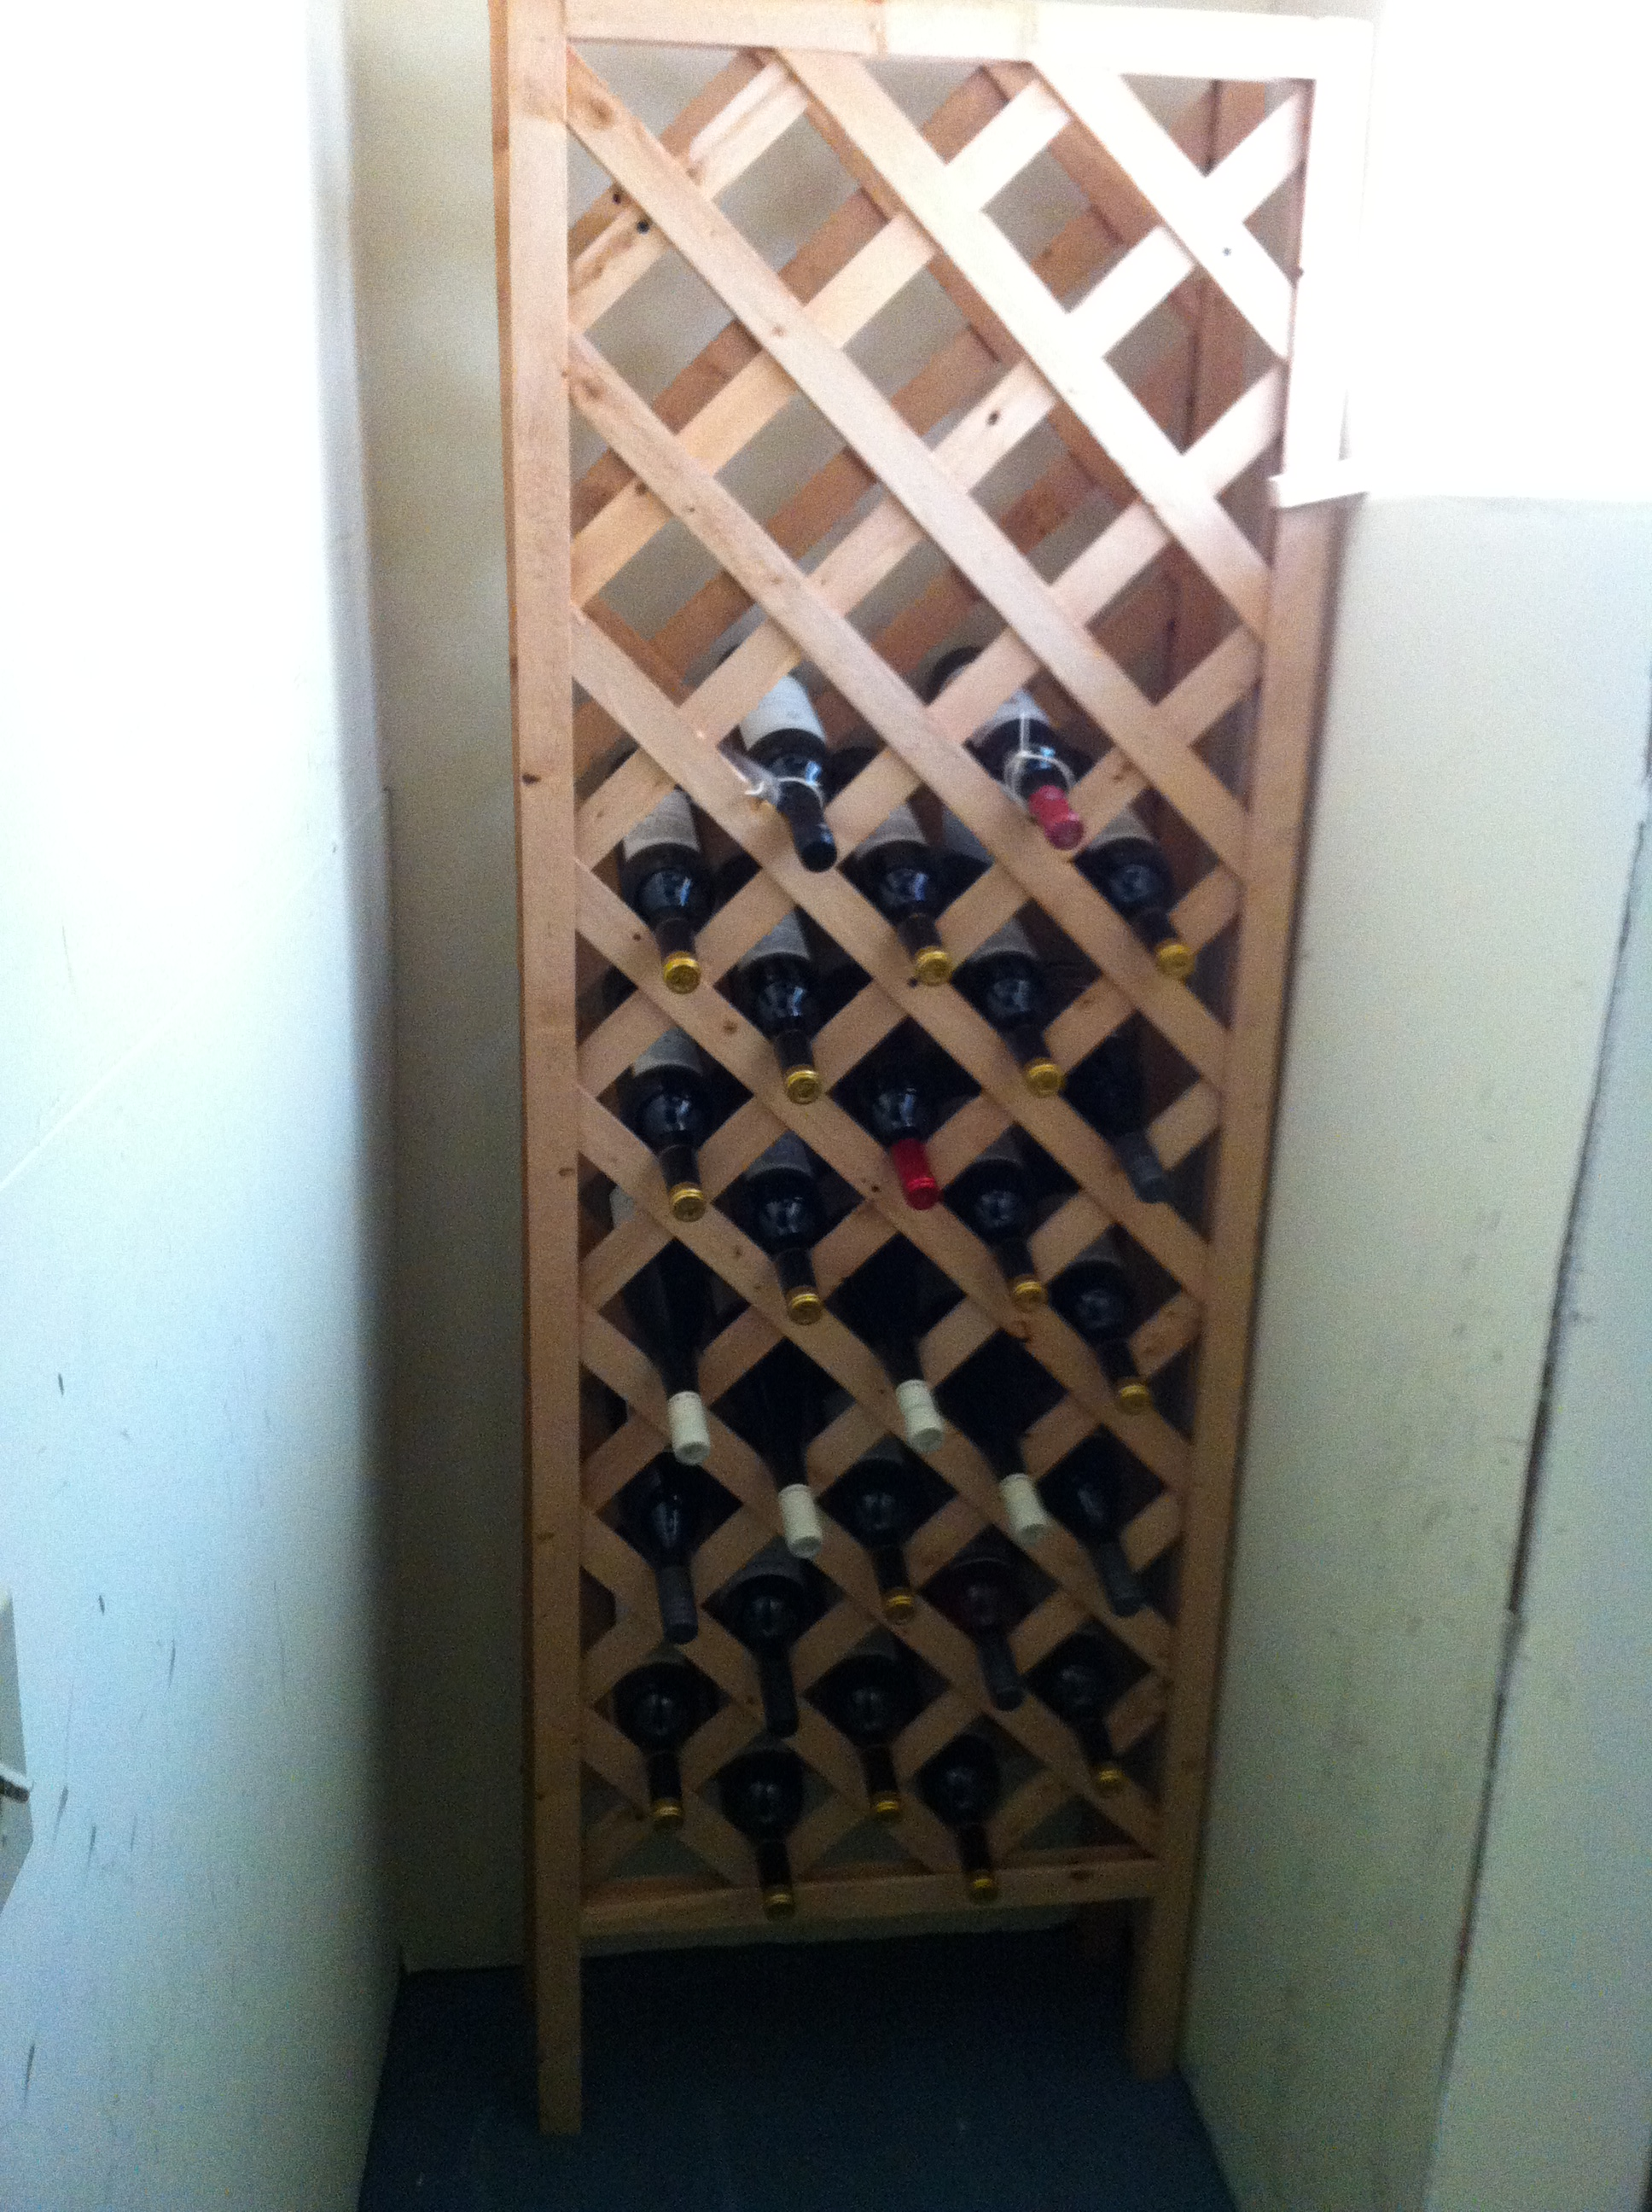 Diy Wine Storage Rack The Diy Wine Cellar Aaron Berdofe 39s Wine And Food Experience